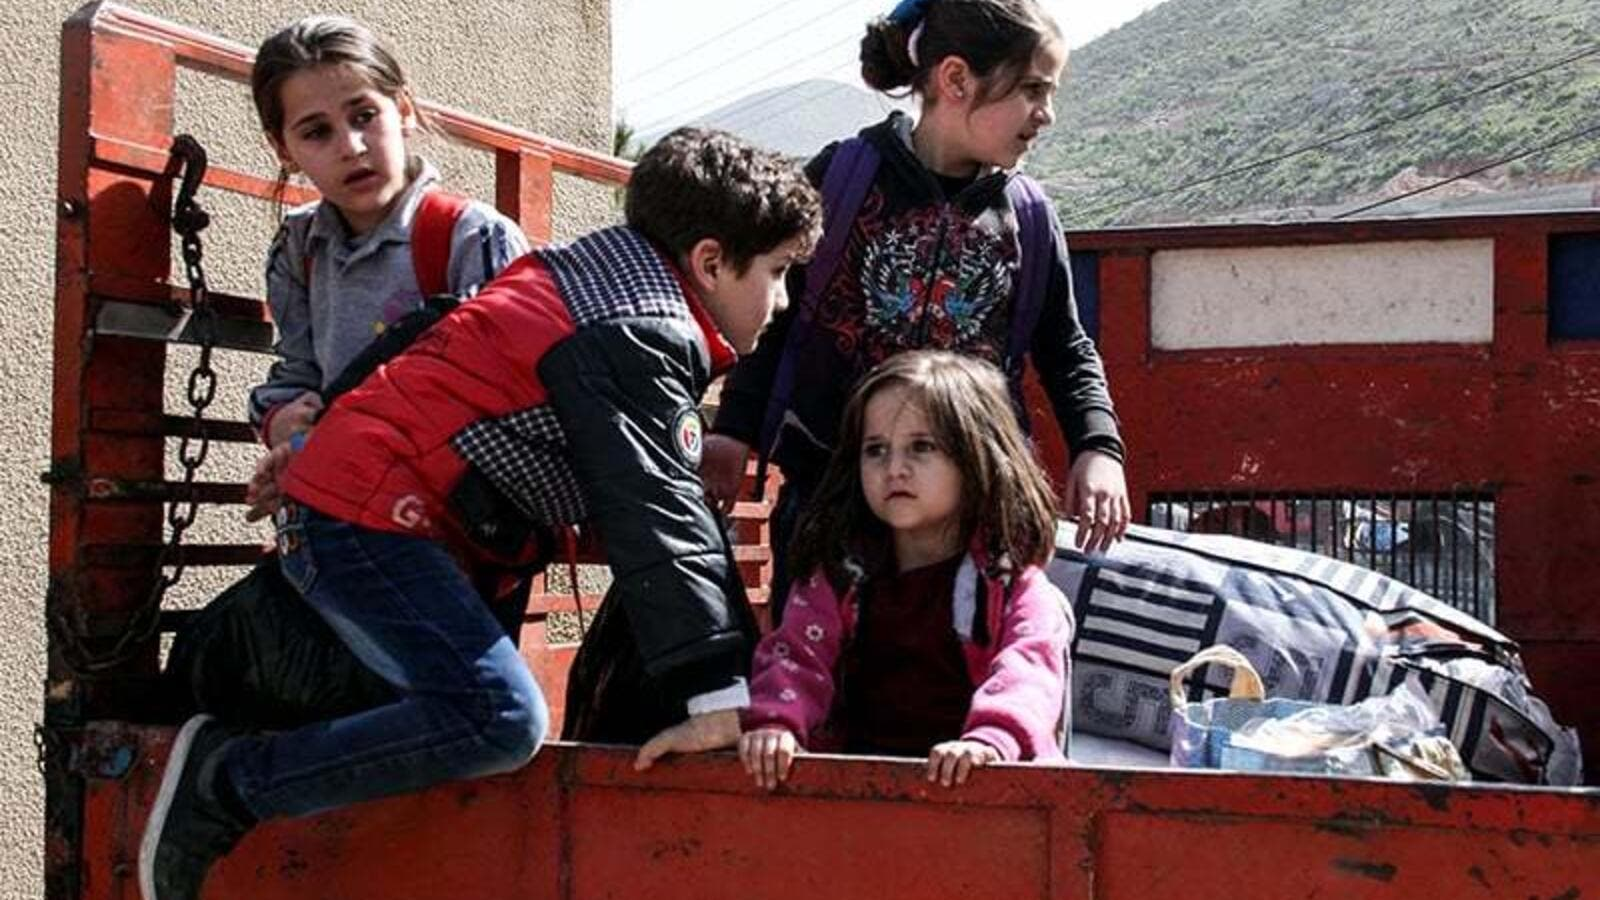 Around 500 Syrian refugees left southern Lebanon. (AFP/ File photo)